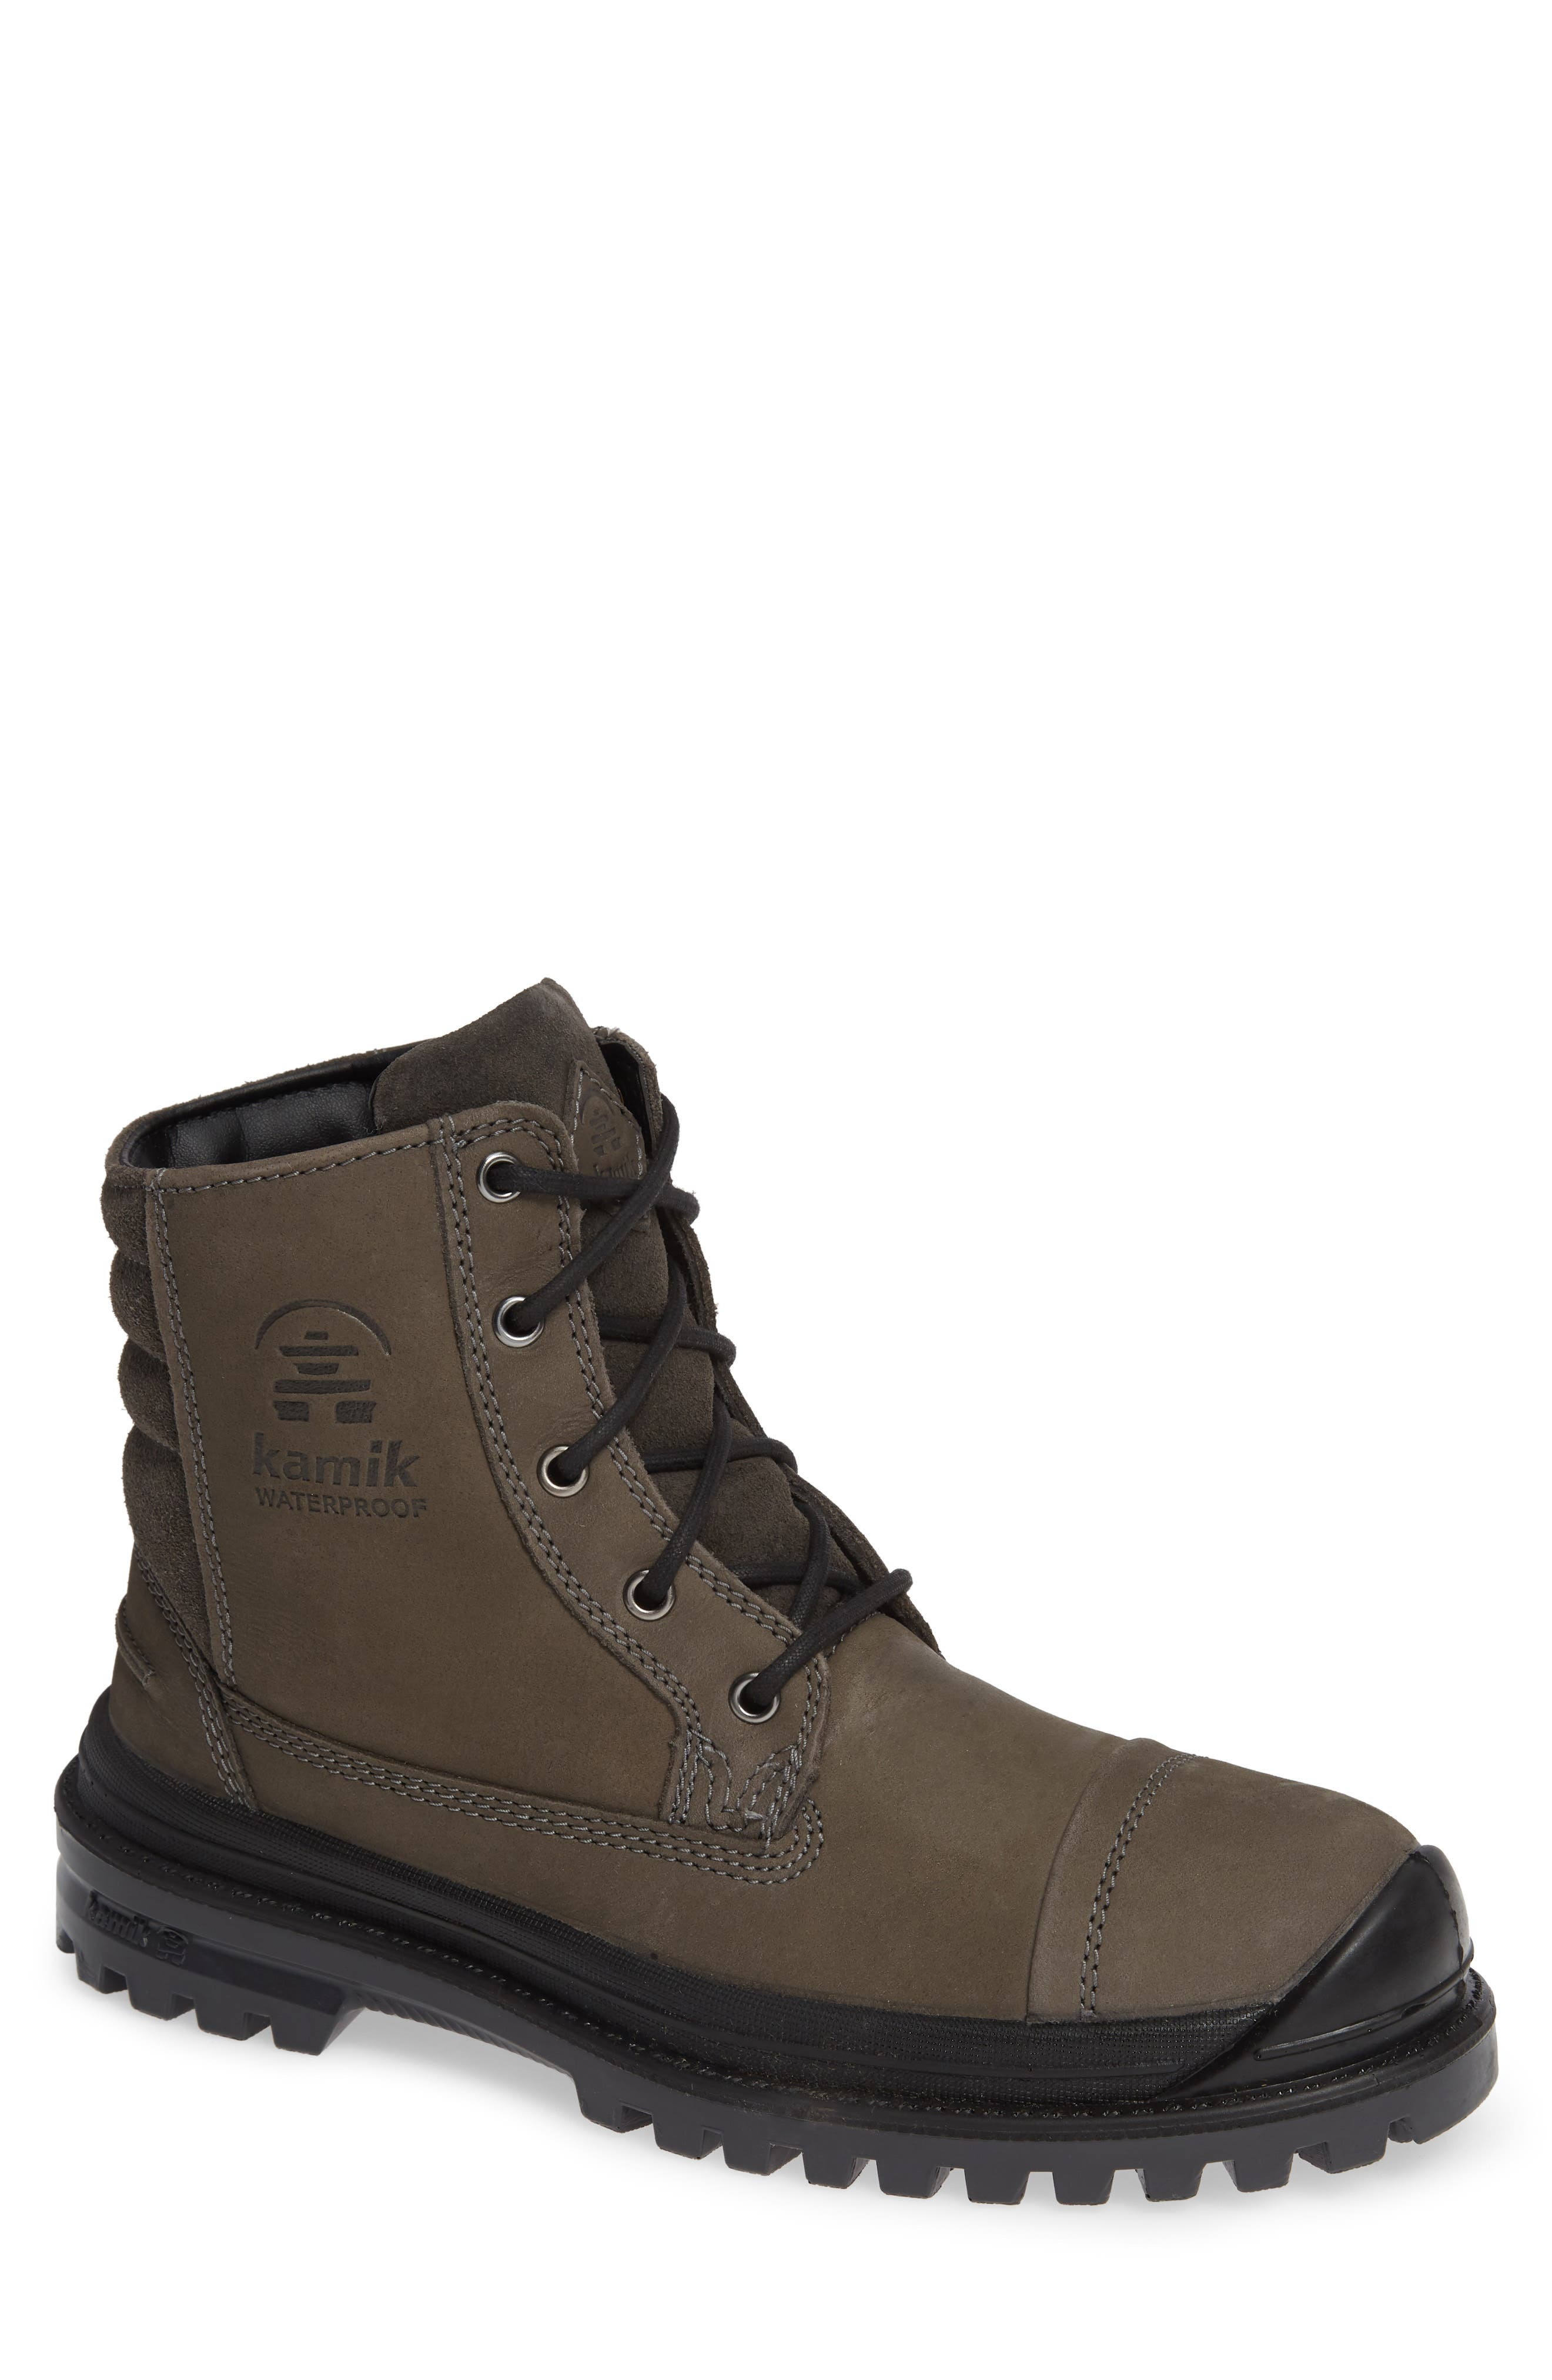 Griffon Waterproof Boot,                         Main,                         color, CHARCOAL LEATHER